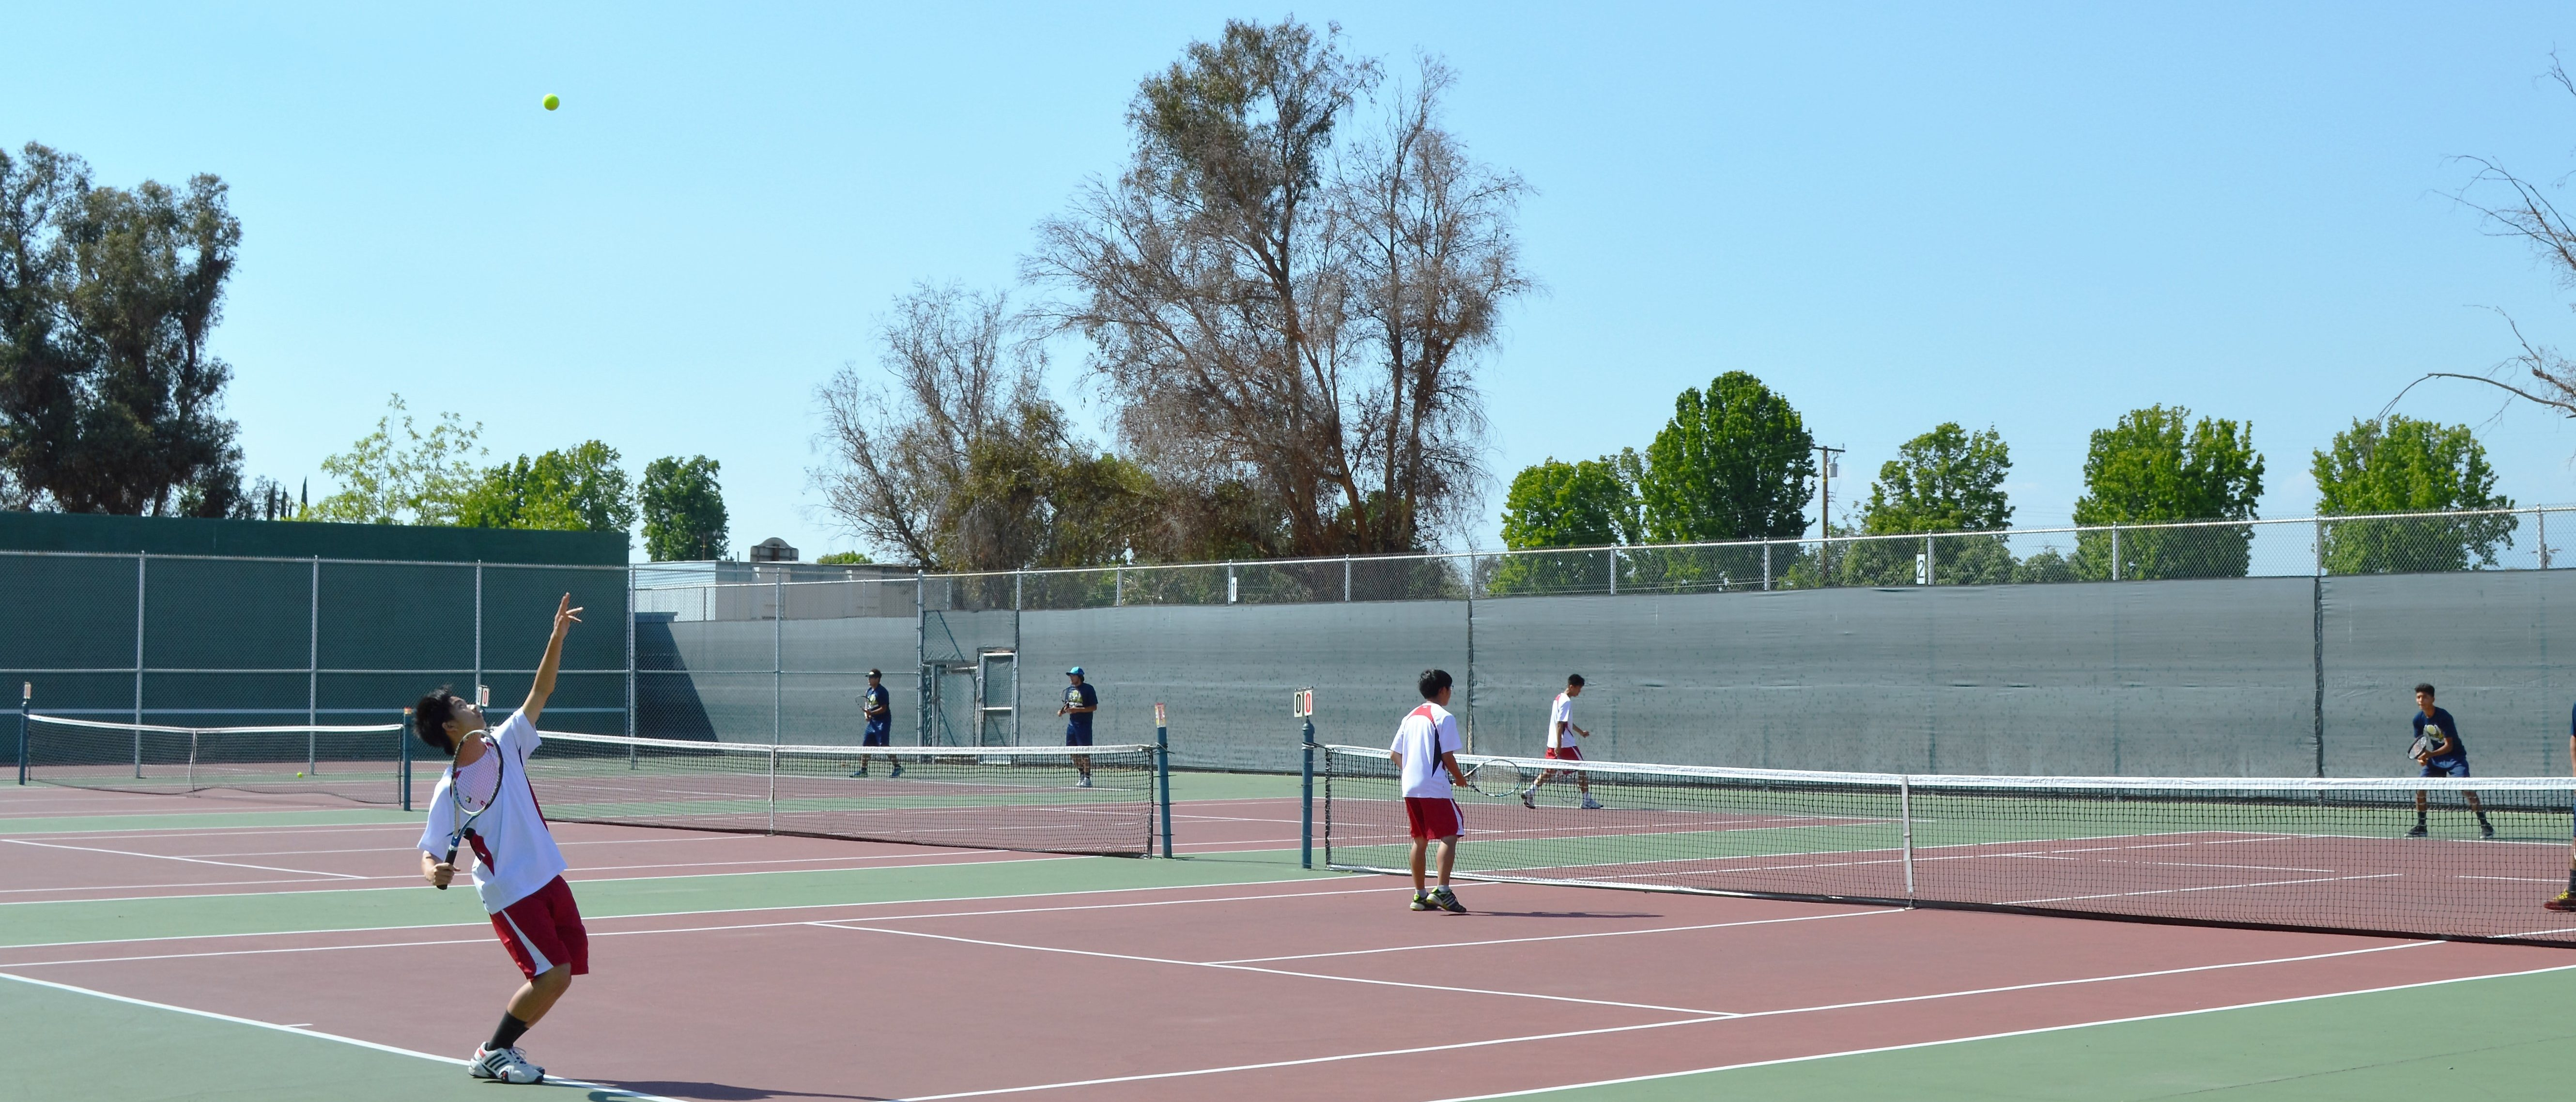 A tennis player serves the ball. THE AZTEC